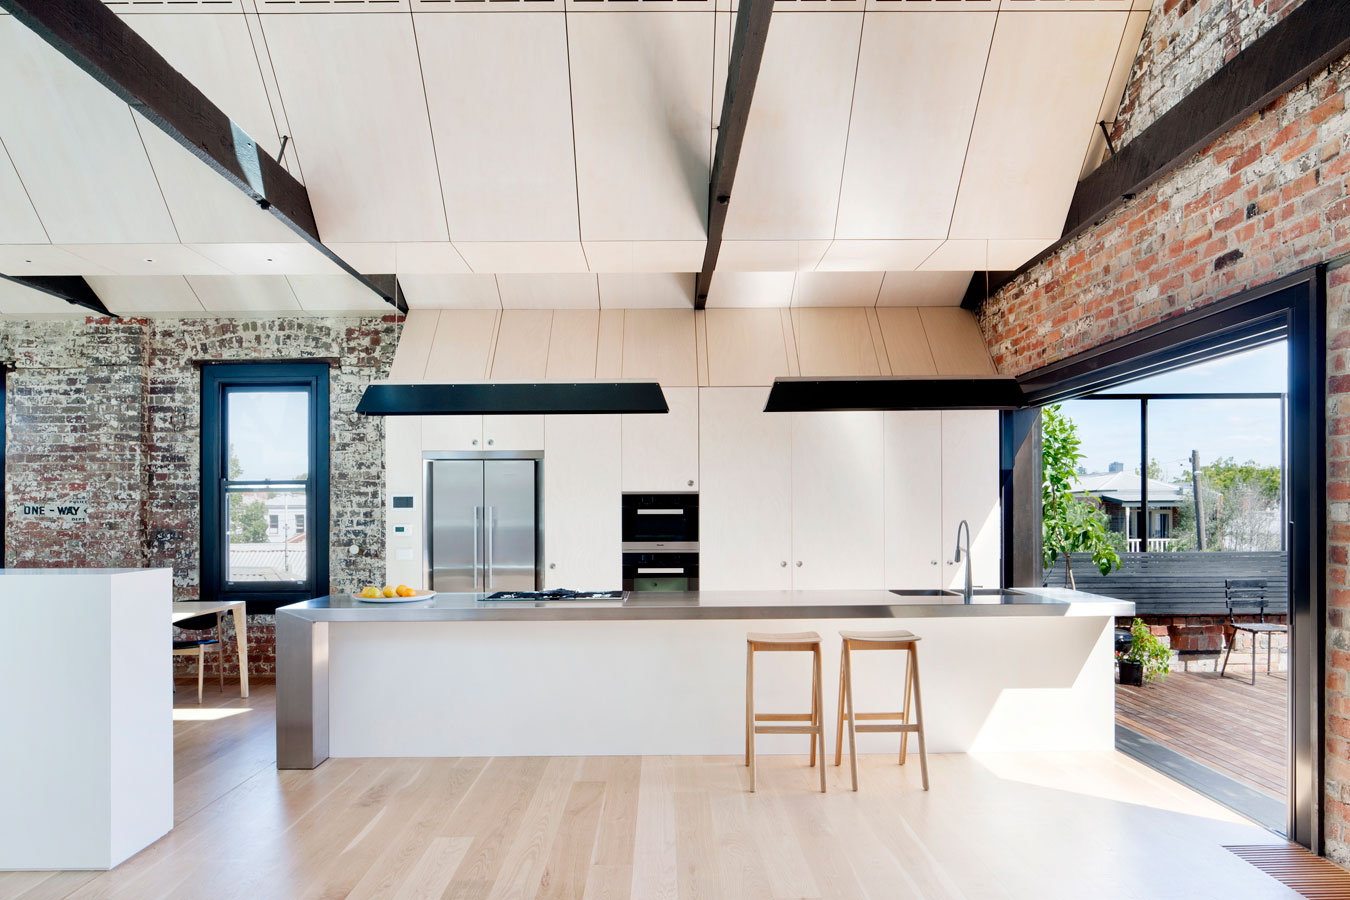 Overend Constructions, Water Factory, kitchen, timber flooring, brick interior walls, Andrew Simpson Architects